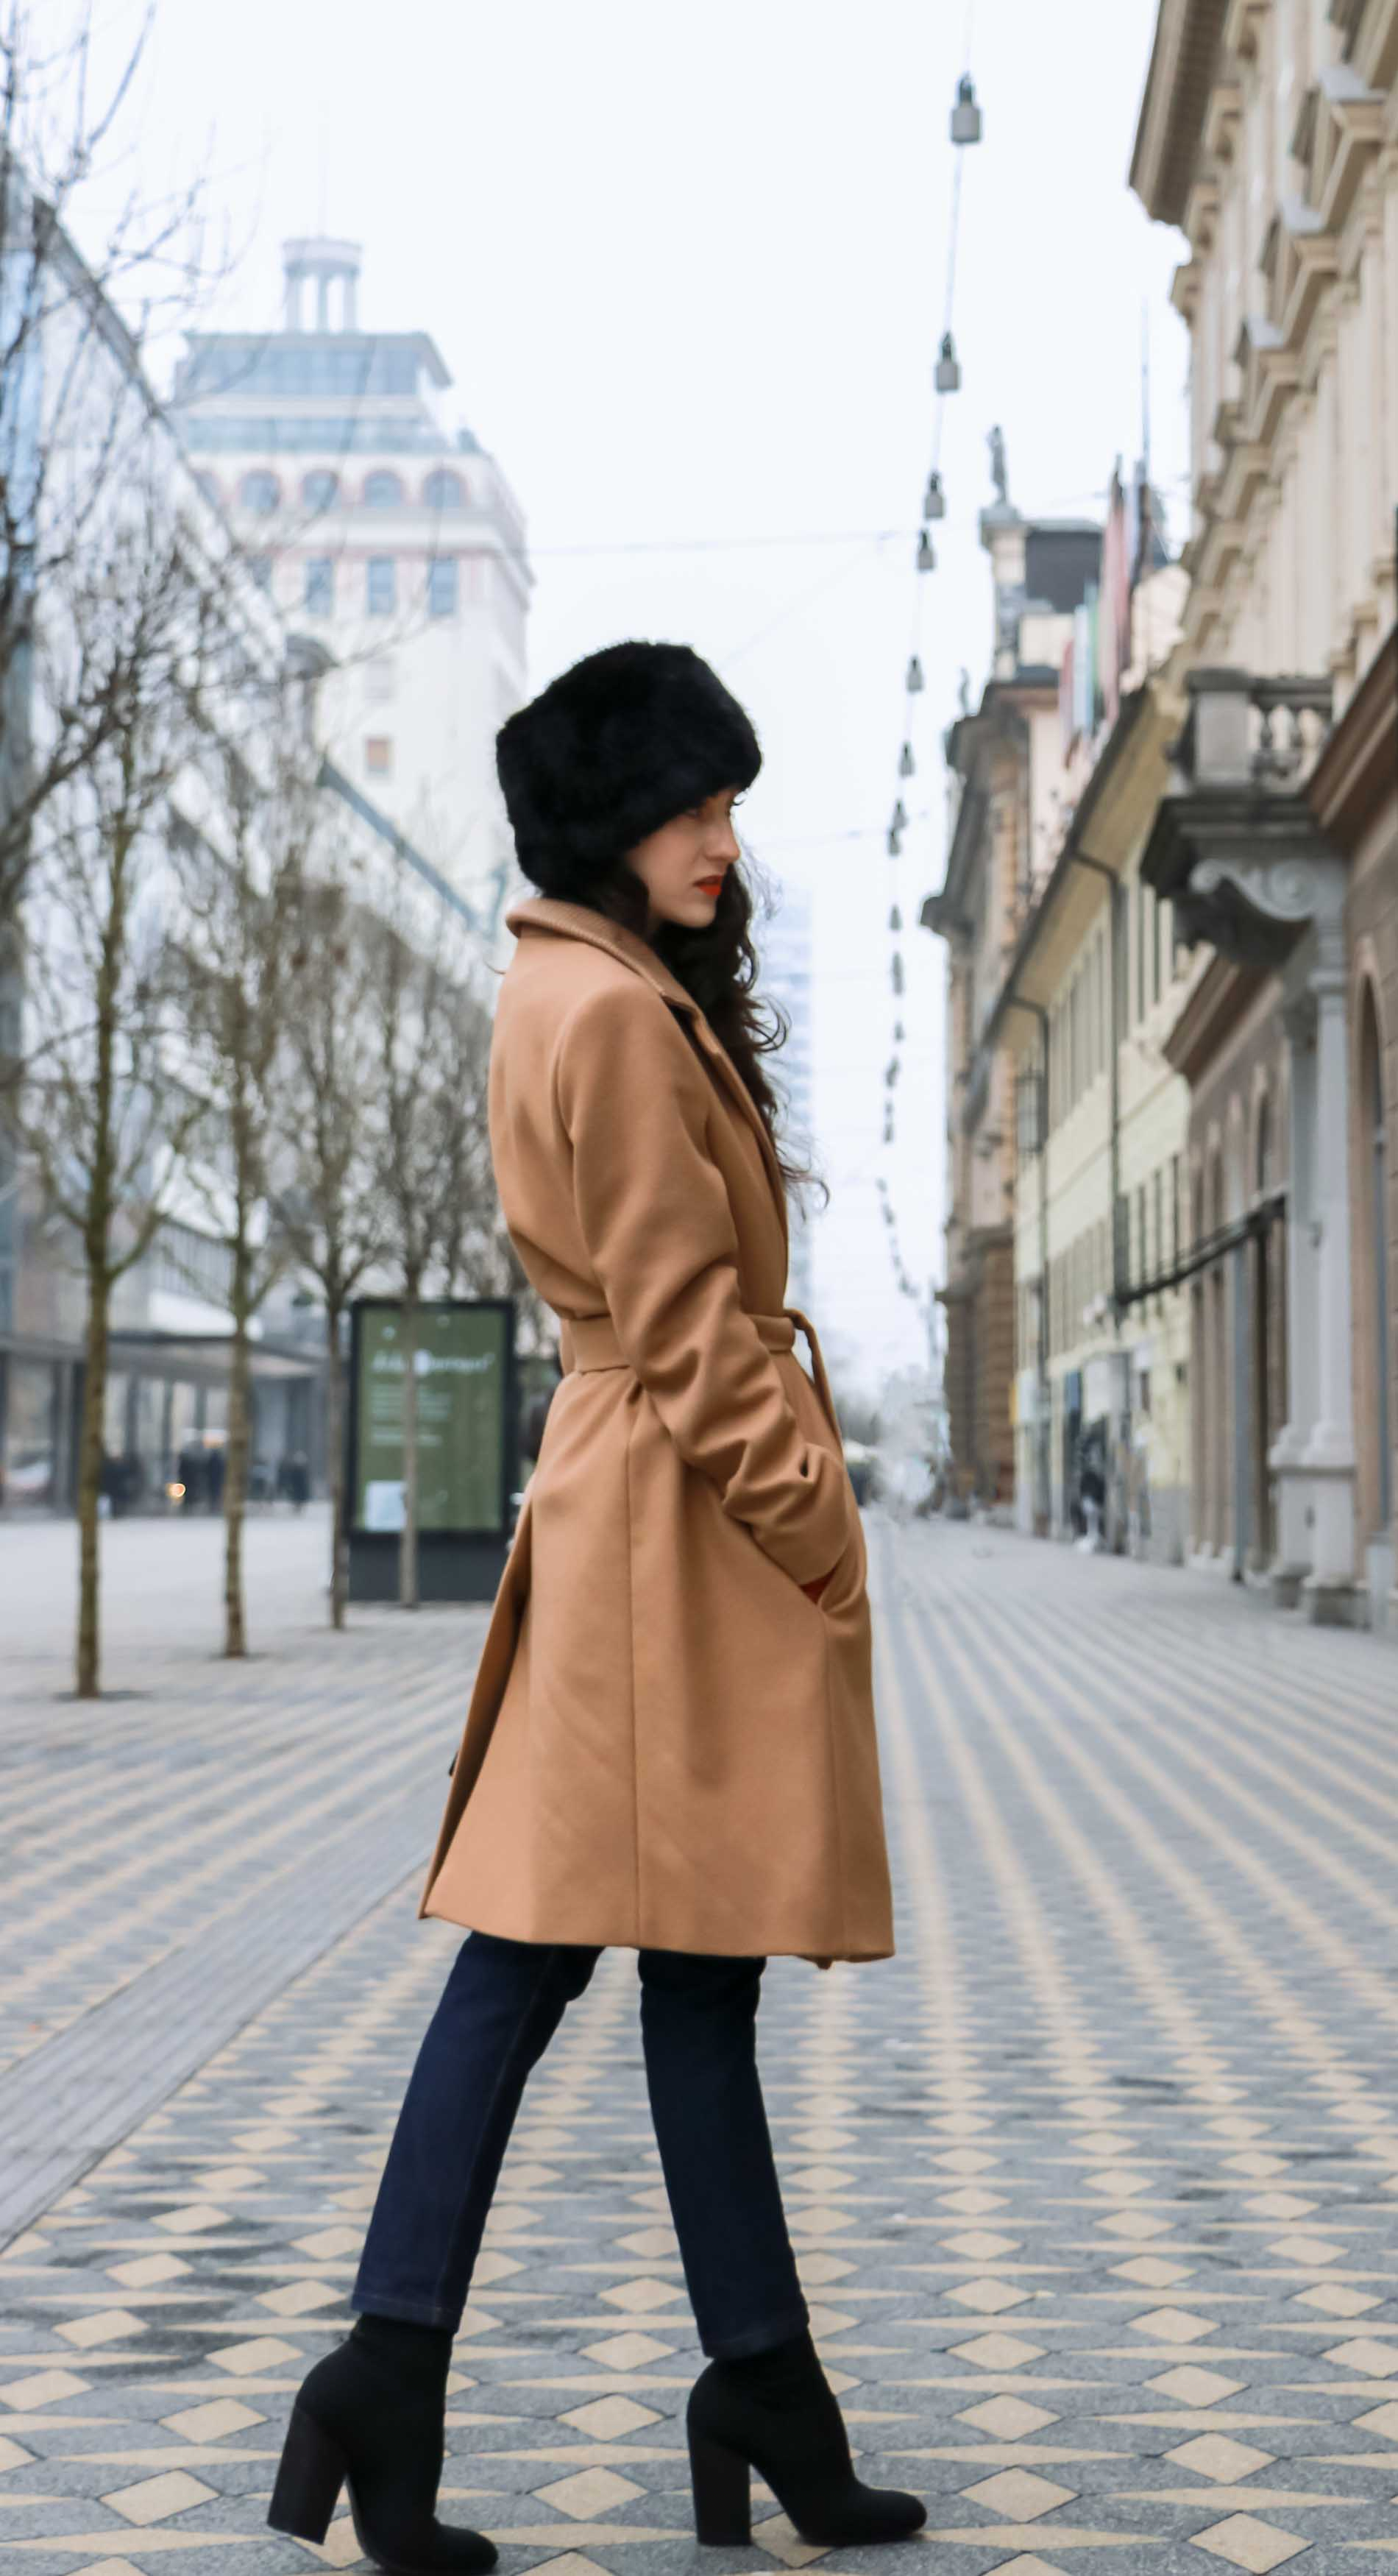 Veronika Lipar of Brunette from Wall Street wearing wrap Escada camel coat, A.P.C. dark tapered denim jeans, black sock boots from Elena Iachi, black fur hat and small black top handle bag while walking on the street